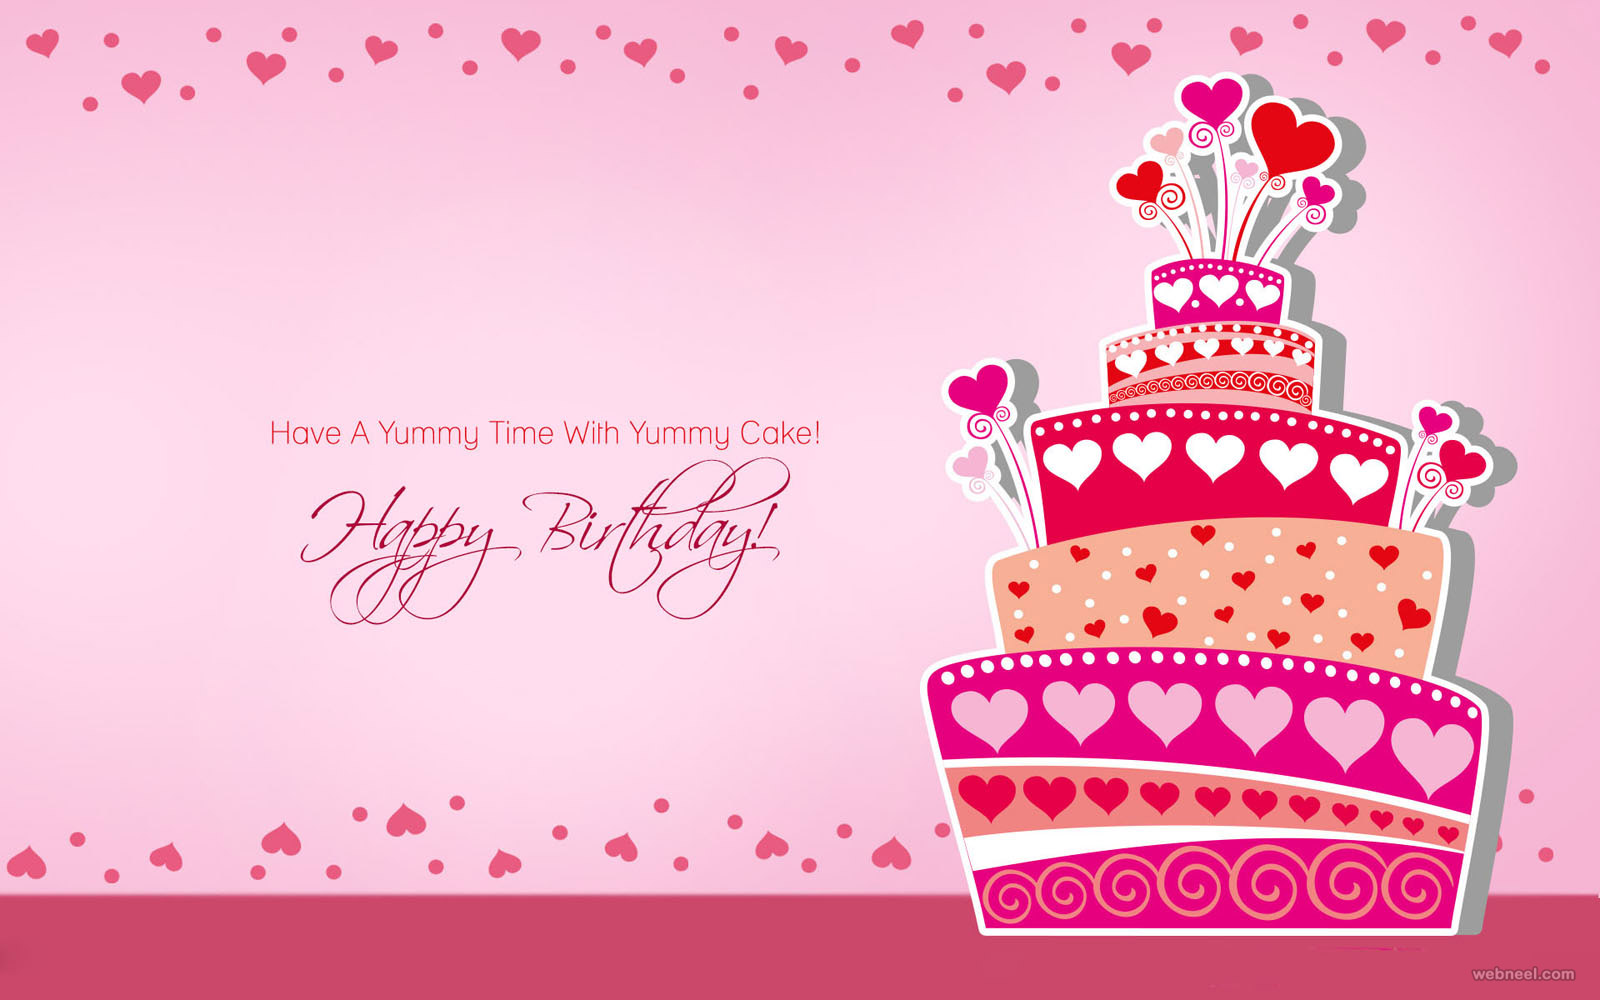 birthday greeting card background design ; 7-birthday-greetings-card-design-cake